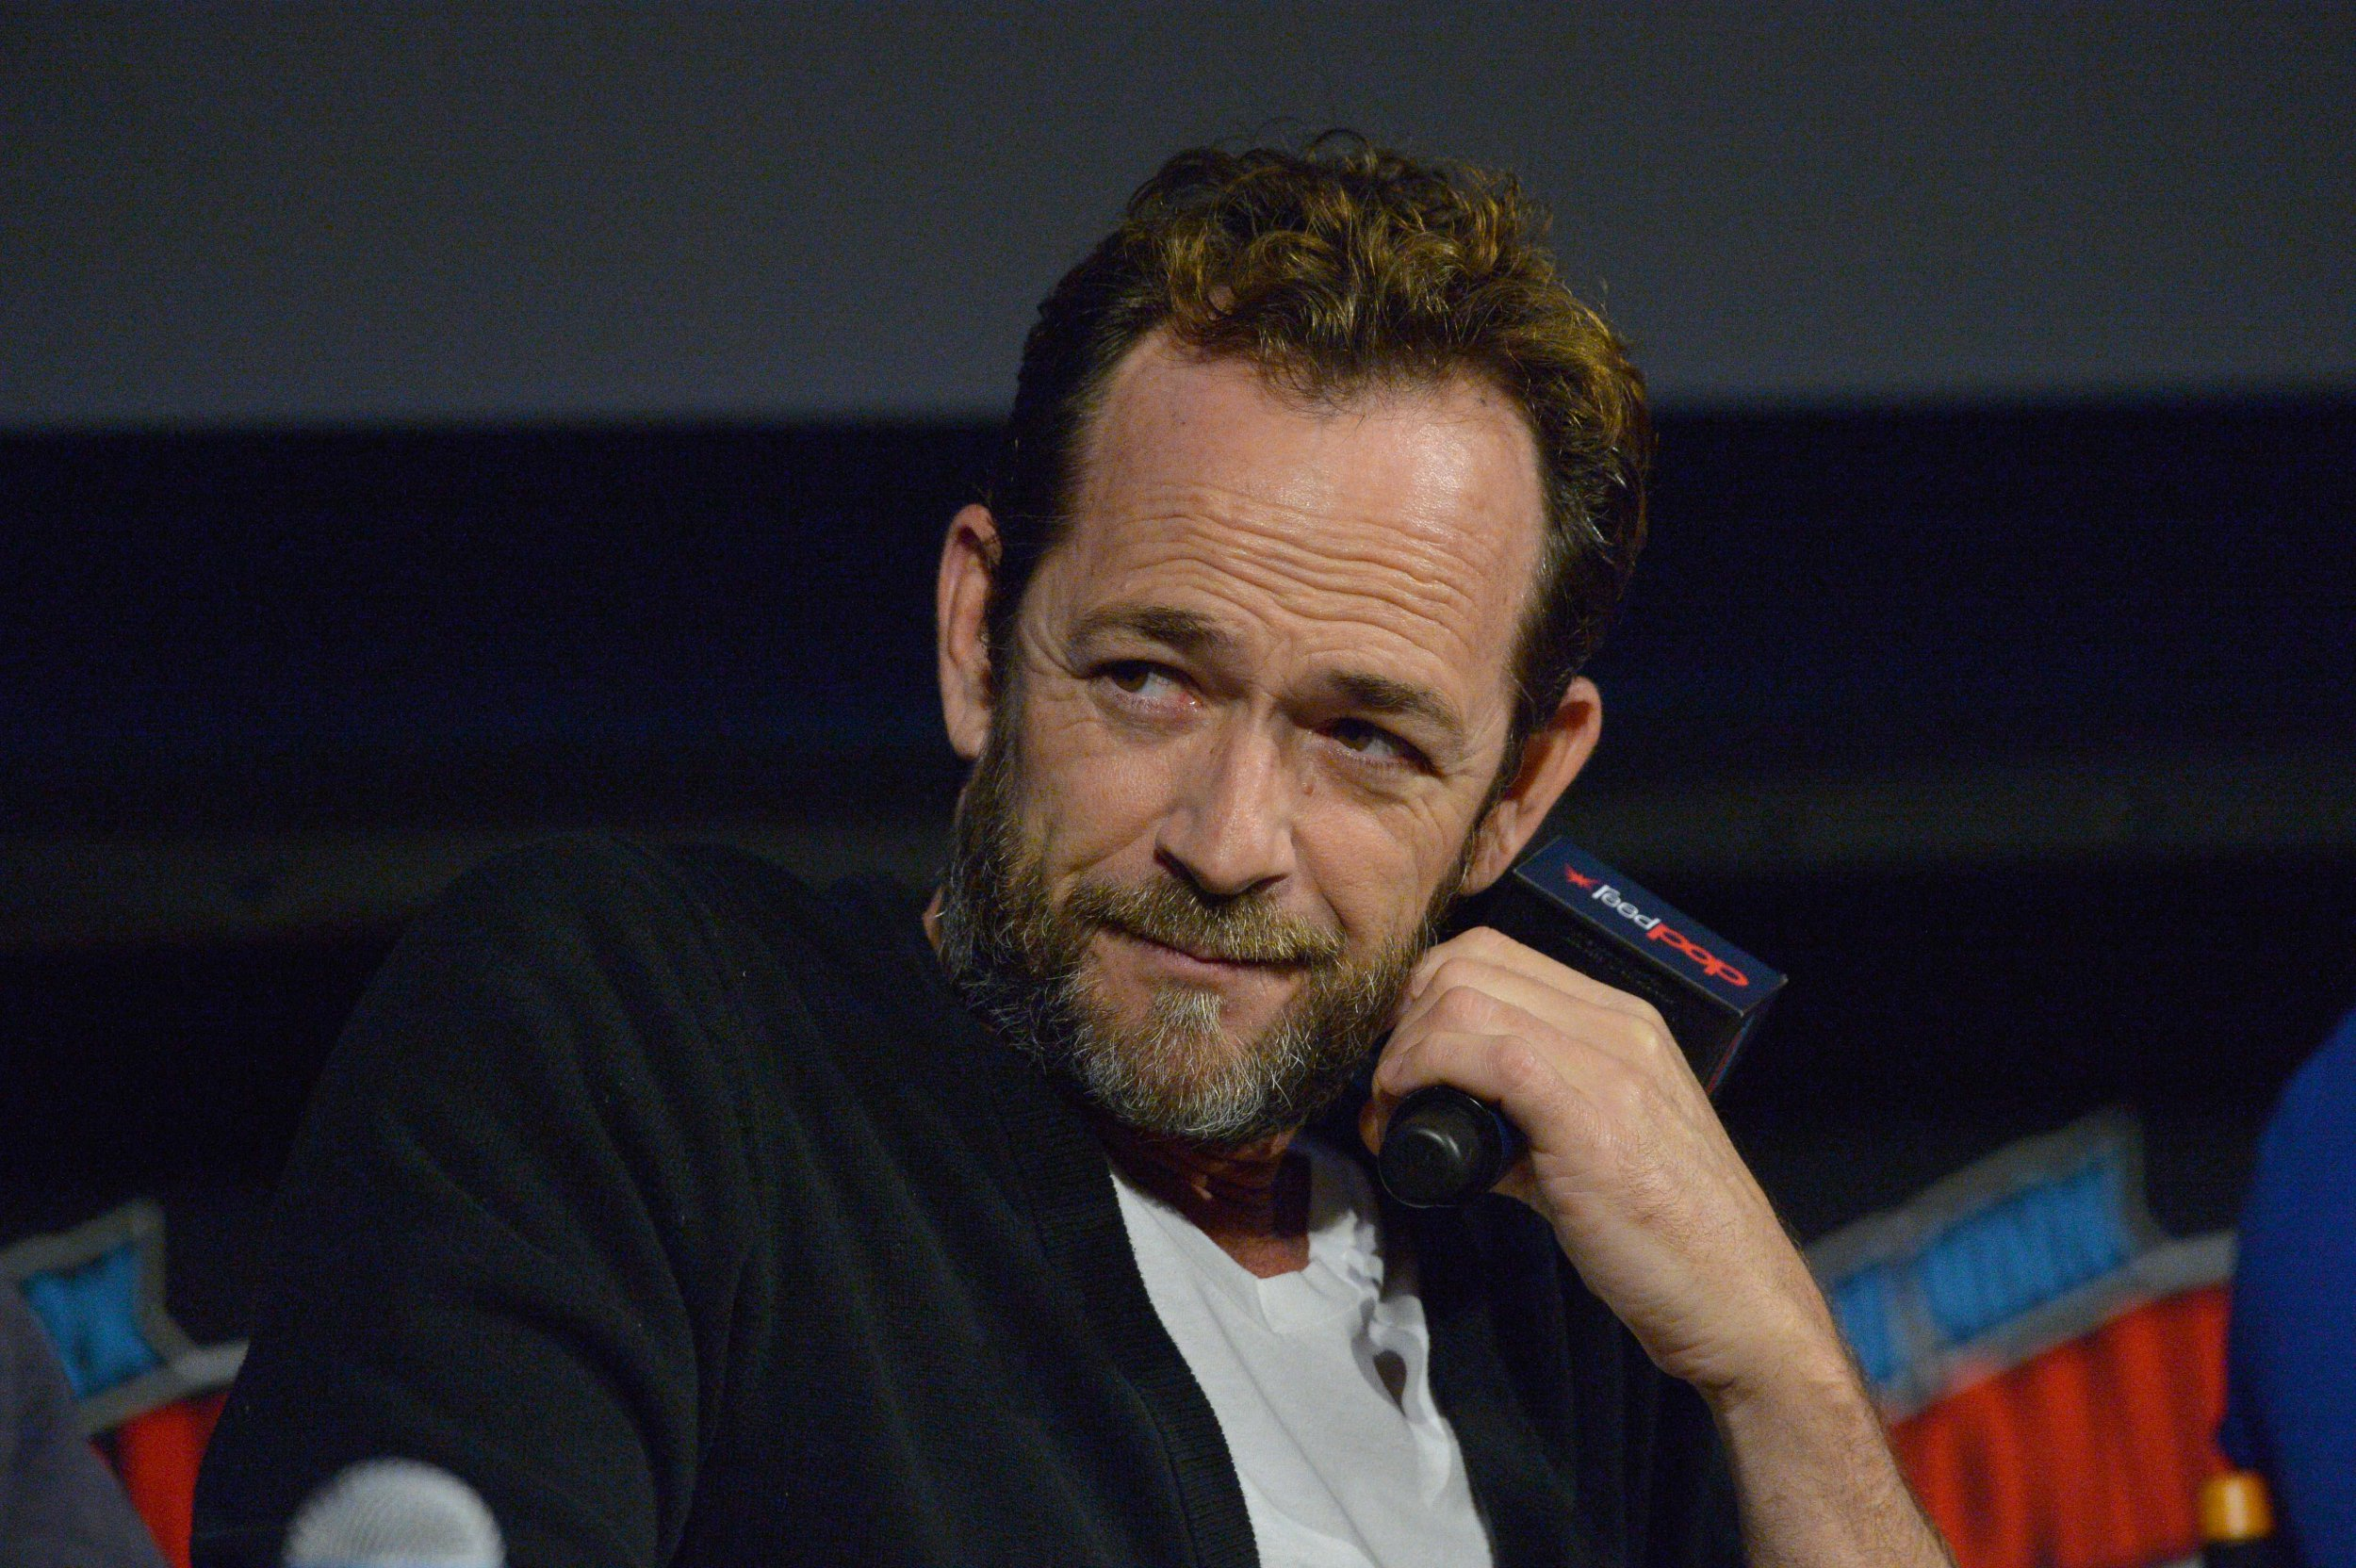 Luke Perry age and roles from Beverly Hills 90210 to Riverdale as he suffers a stroke